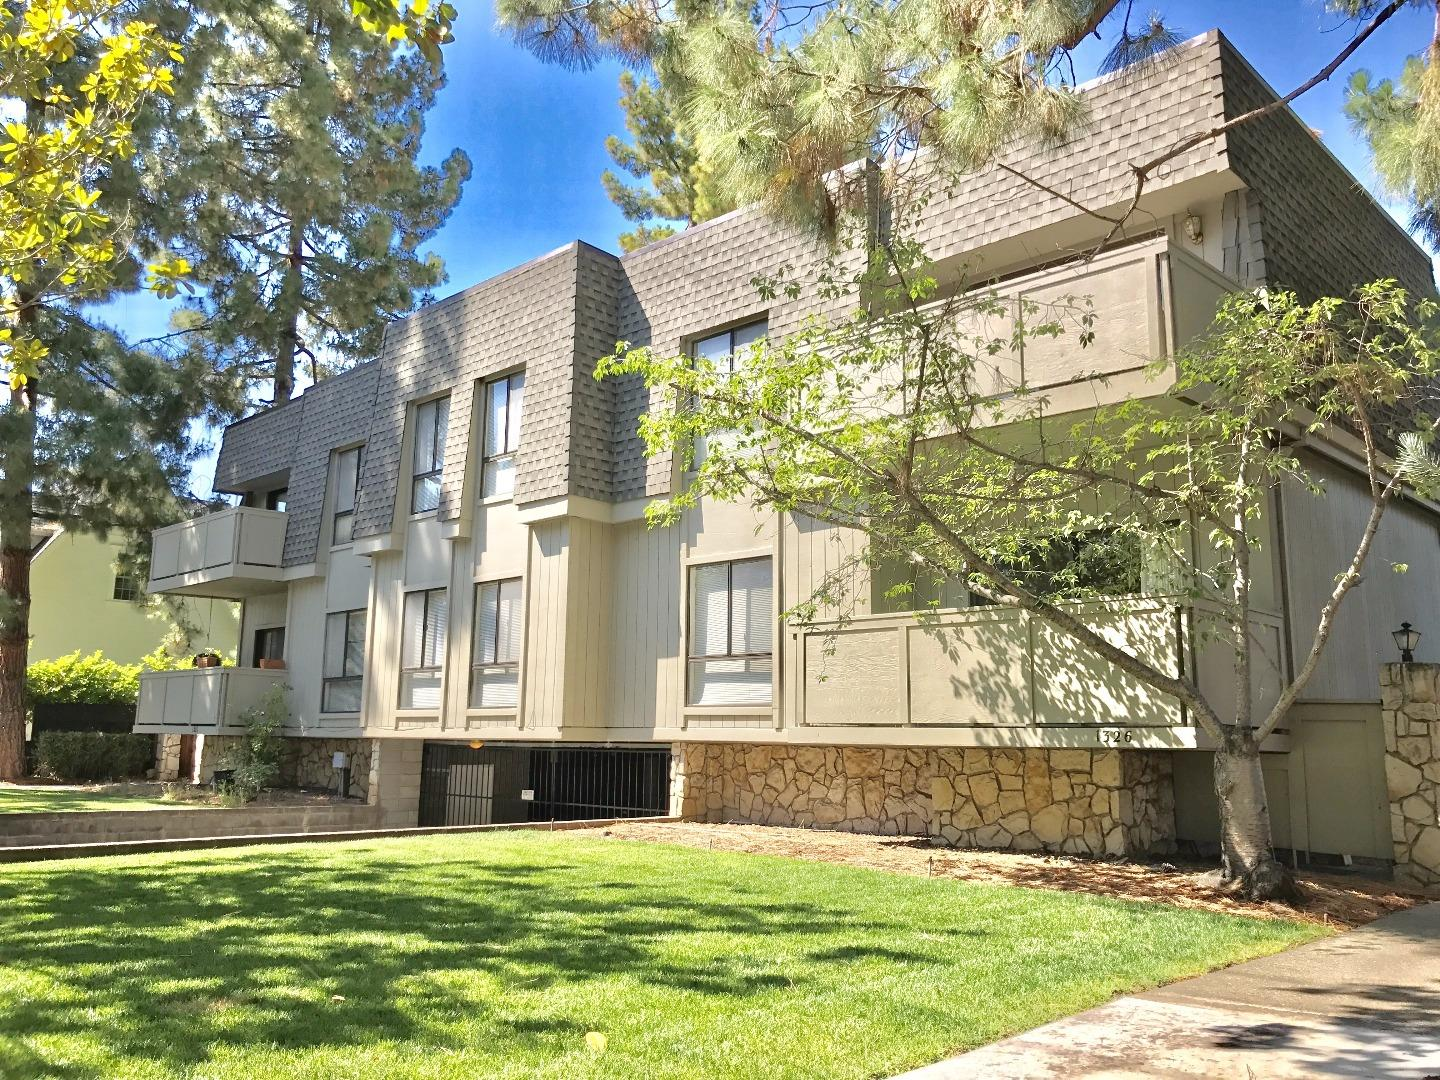 Multi-Family Home for Sale at 1326 Hoover Street Menlo Park, California 94025 United States